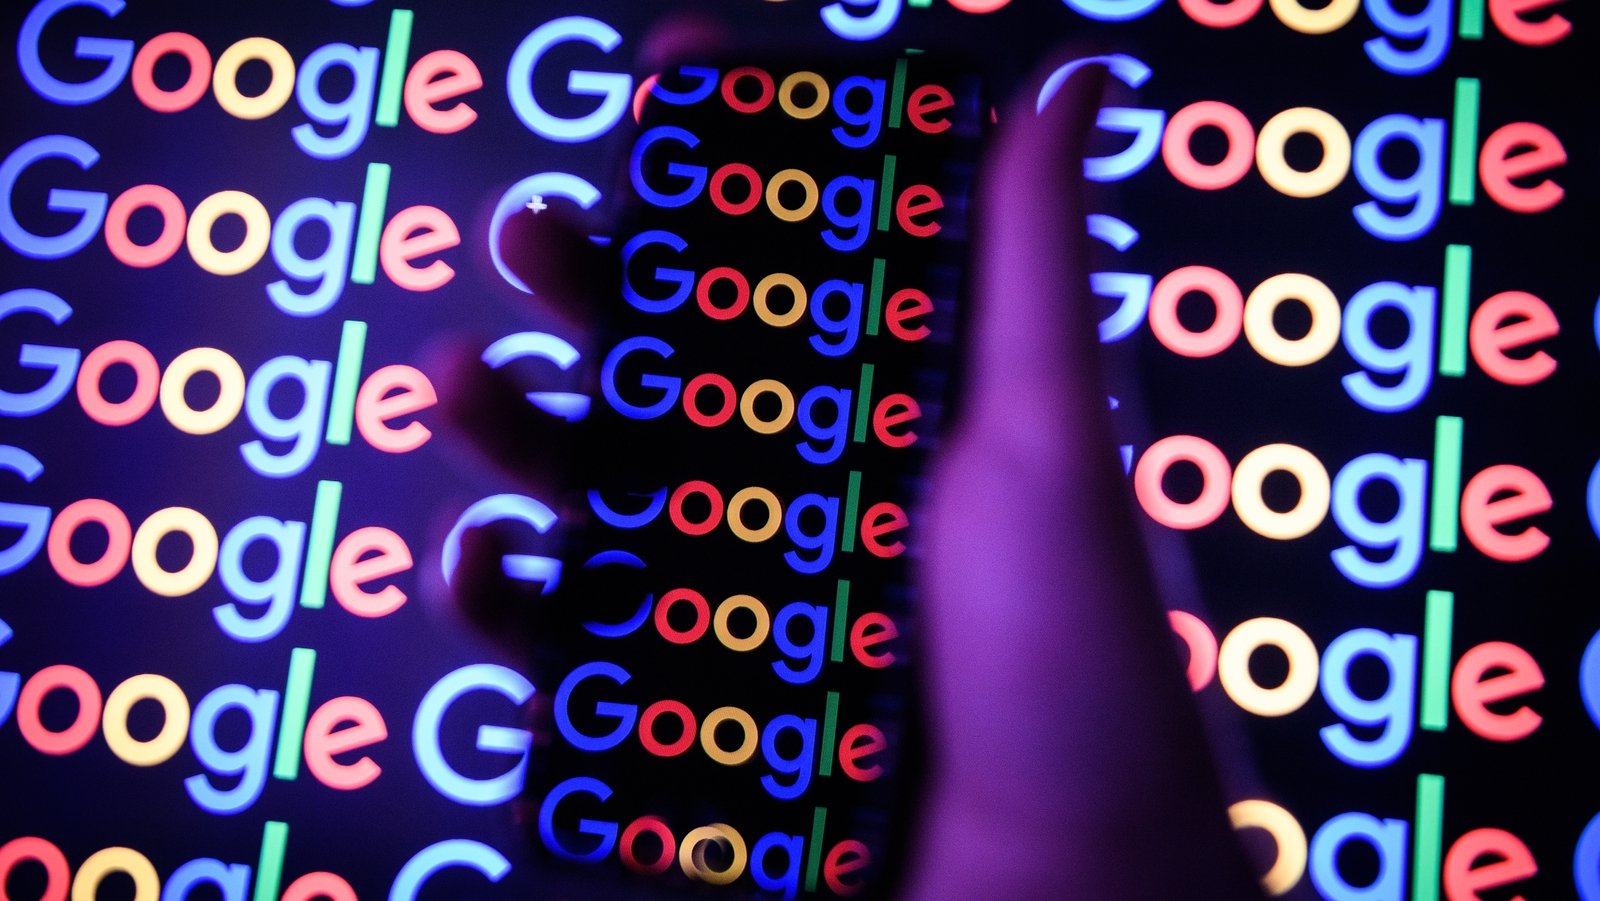 Google delays Chrome's blocking of tracking cookies